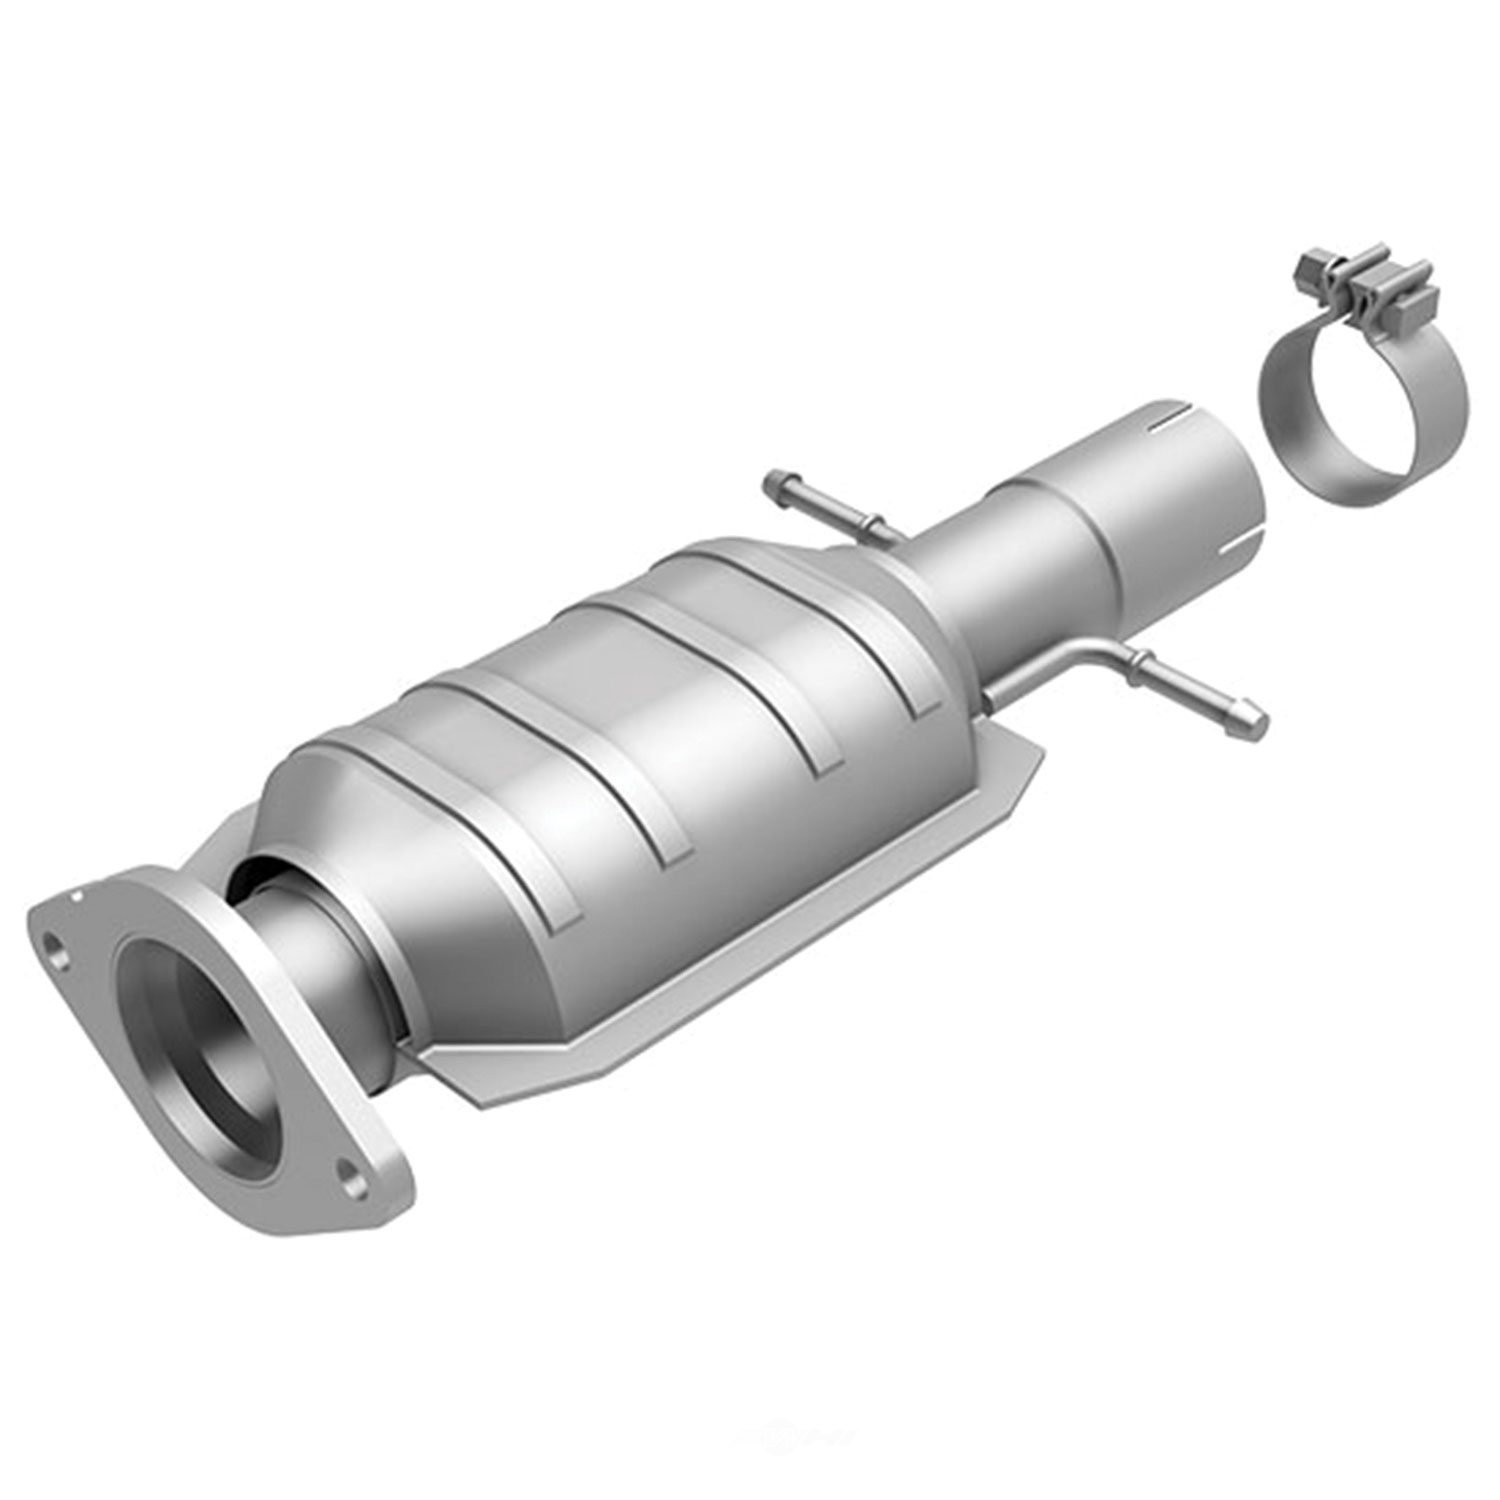 MAGNAFLOW FEDERAL CONVERTER - Direct-fit Oem Grade Federal(exc.ca) Catalytic Converter - MFS 51913